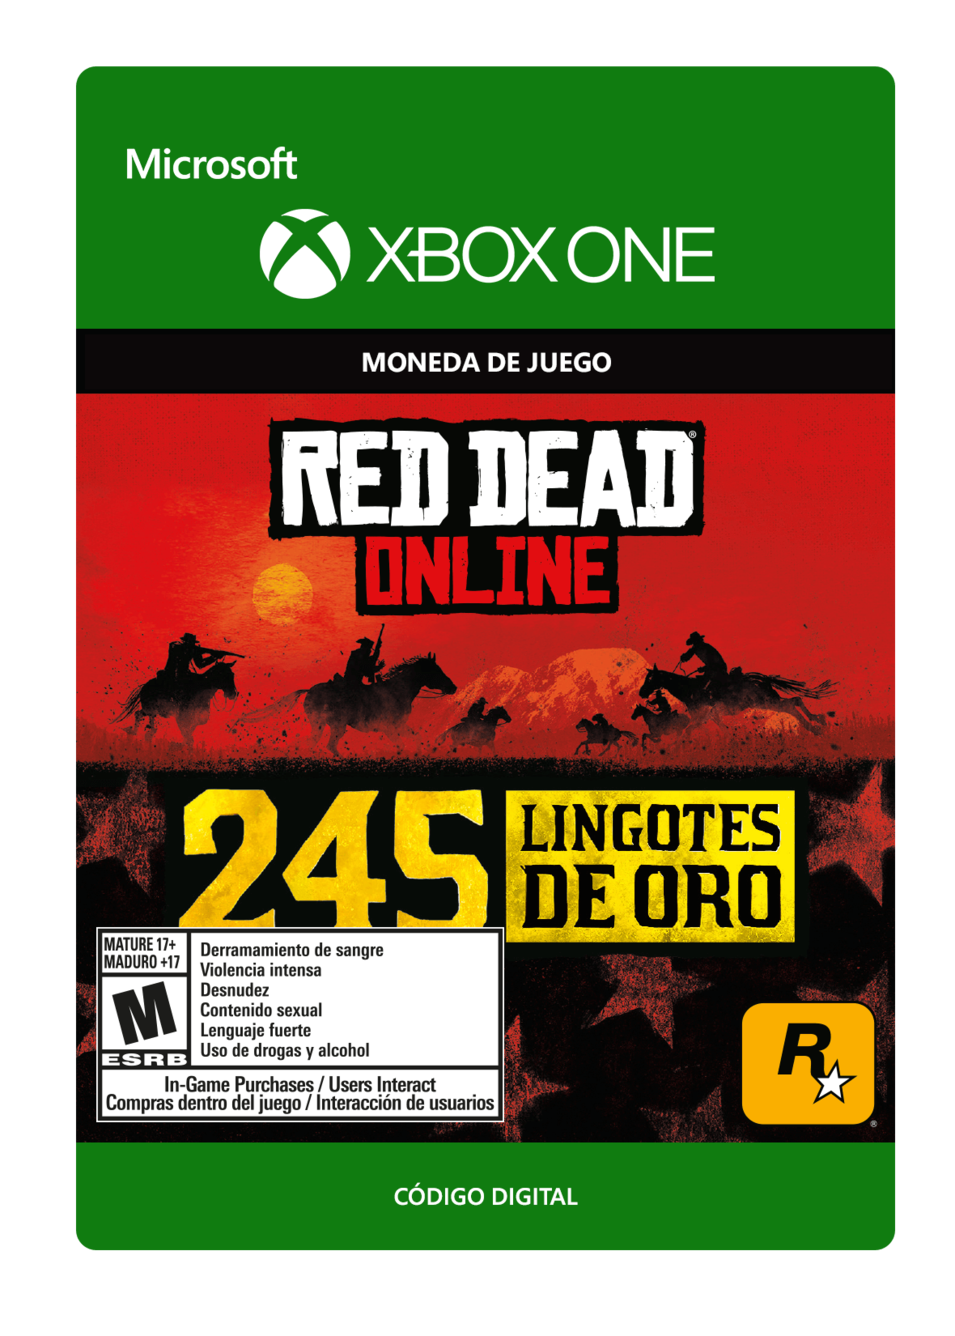 Red Dead Redemption 2: 245 Gold Bars Lingotes de Oro